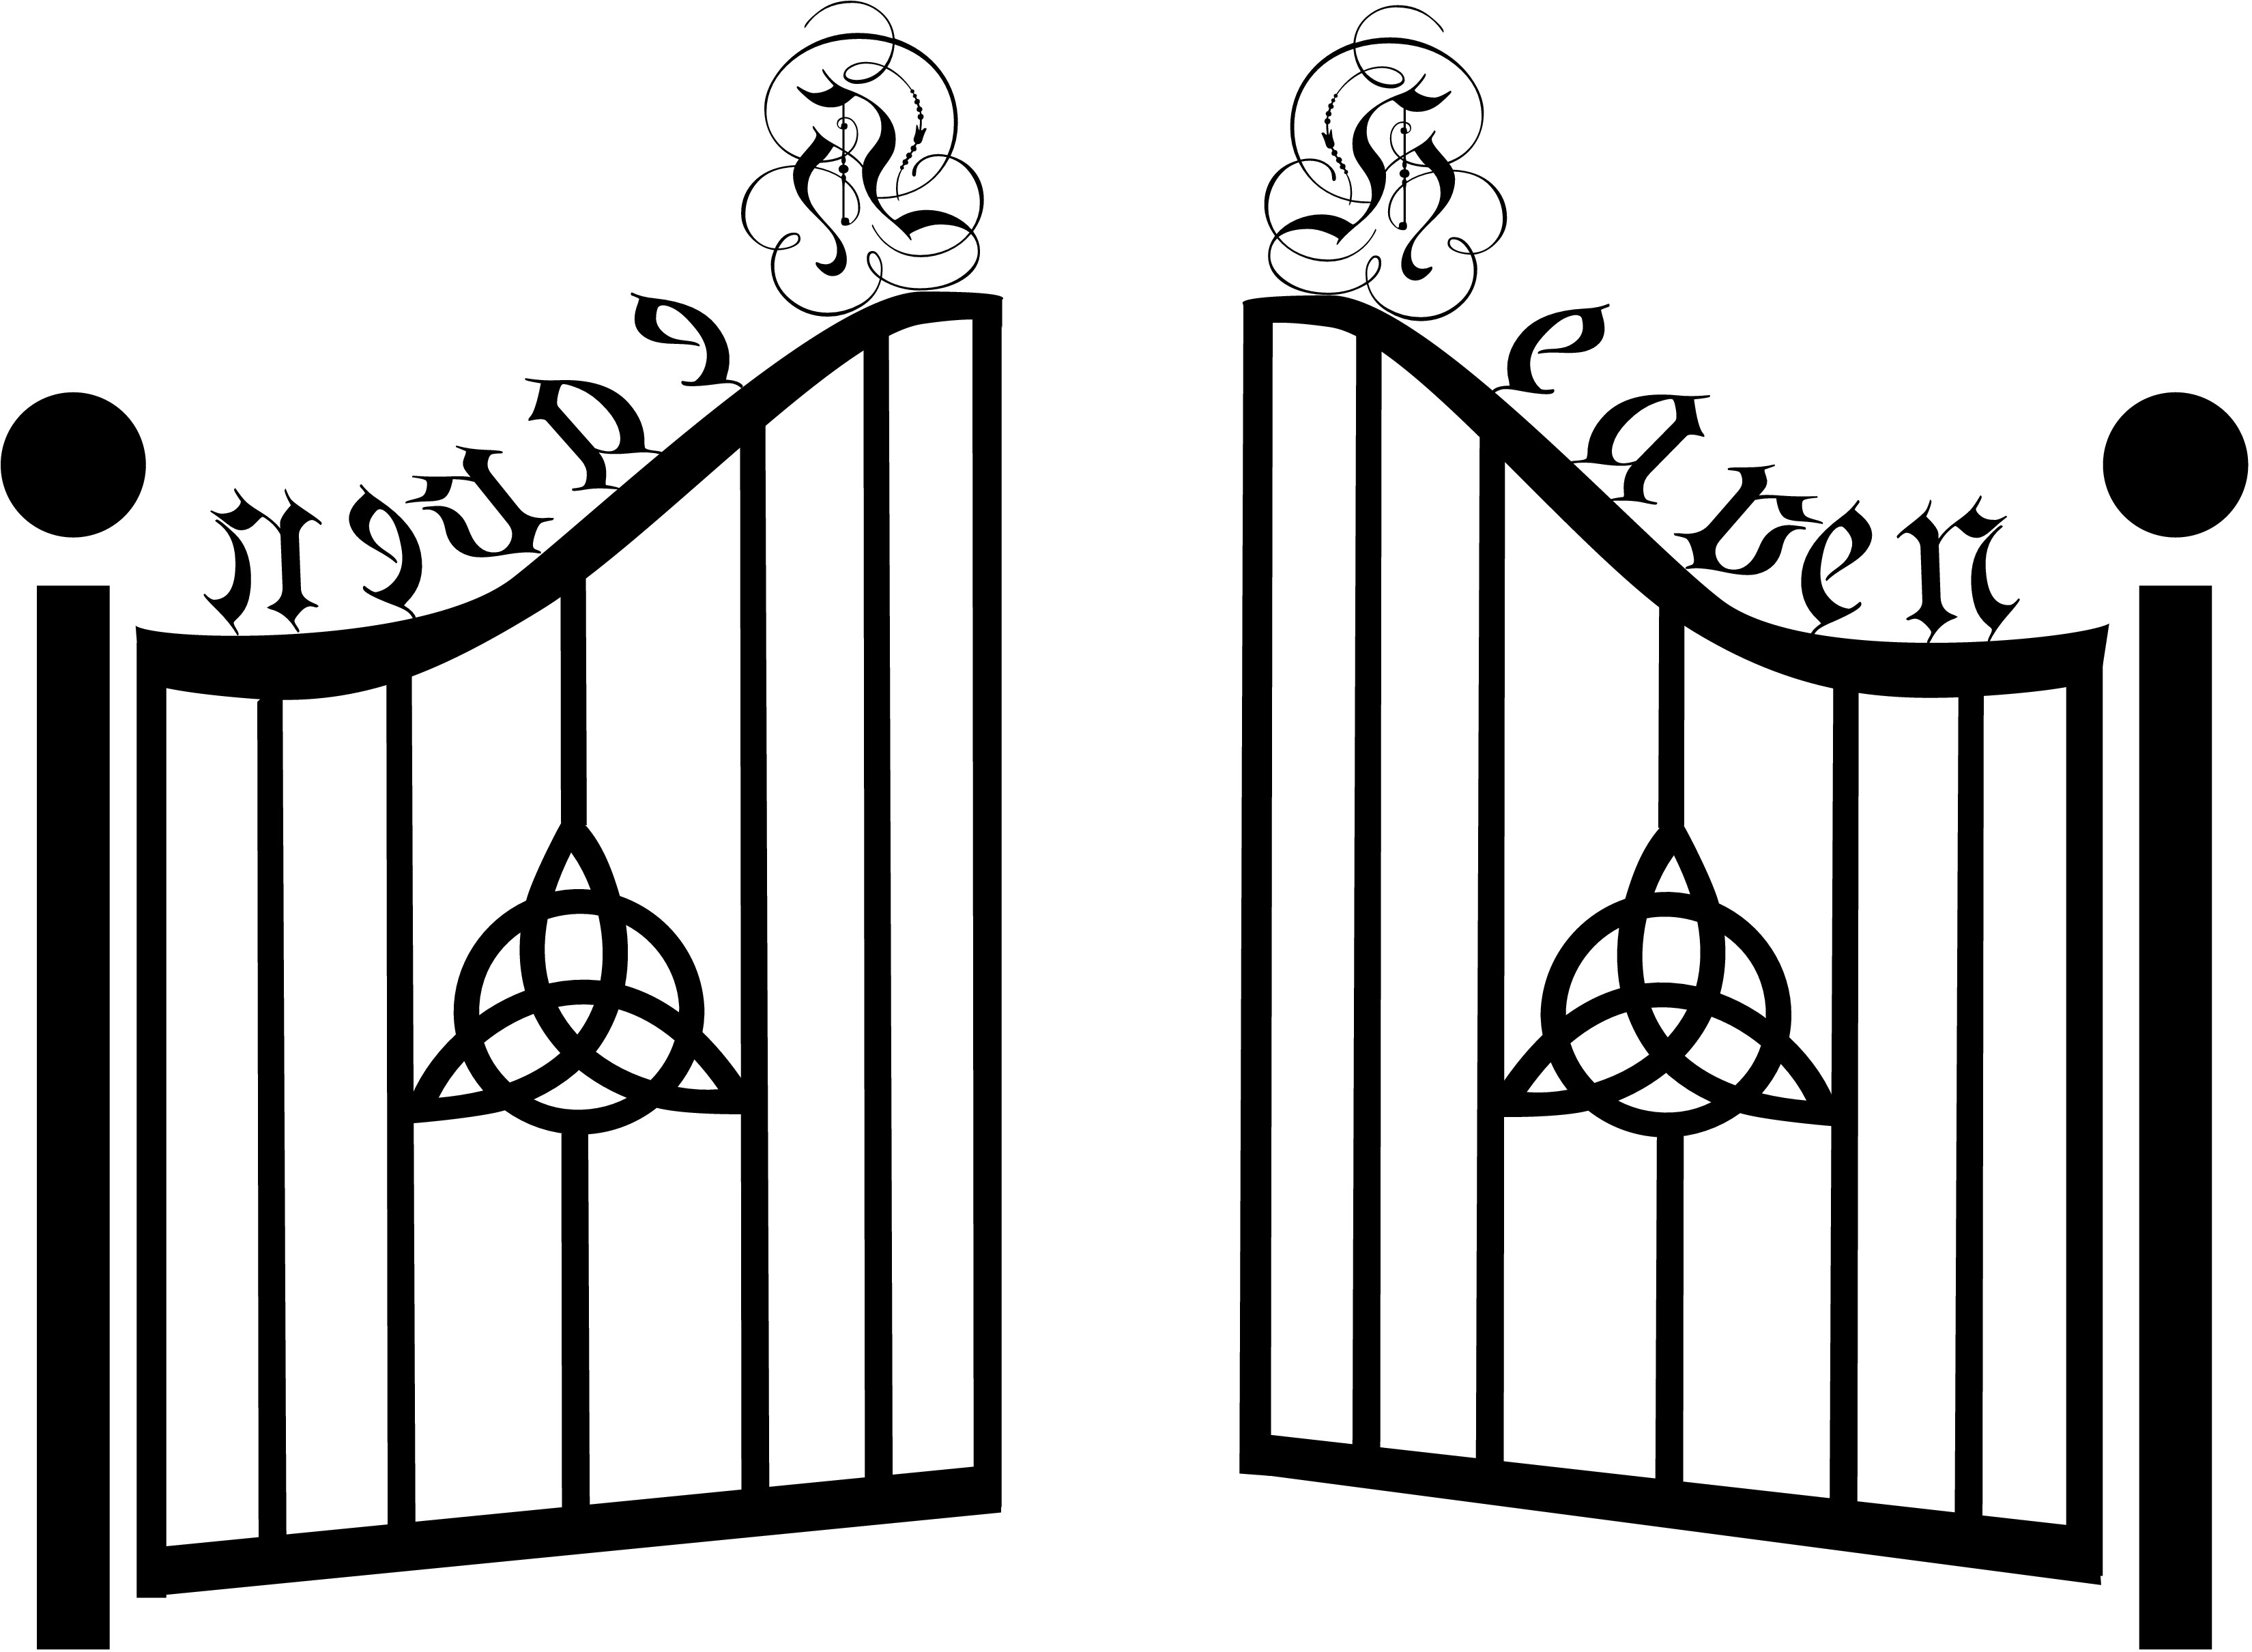 Black & white gate clipart png royalty free stock Clipart black and white gate 2 » Clipart Portal png royalty free stock